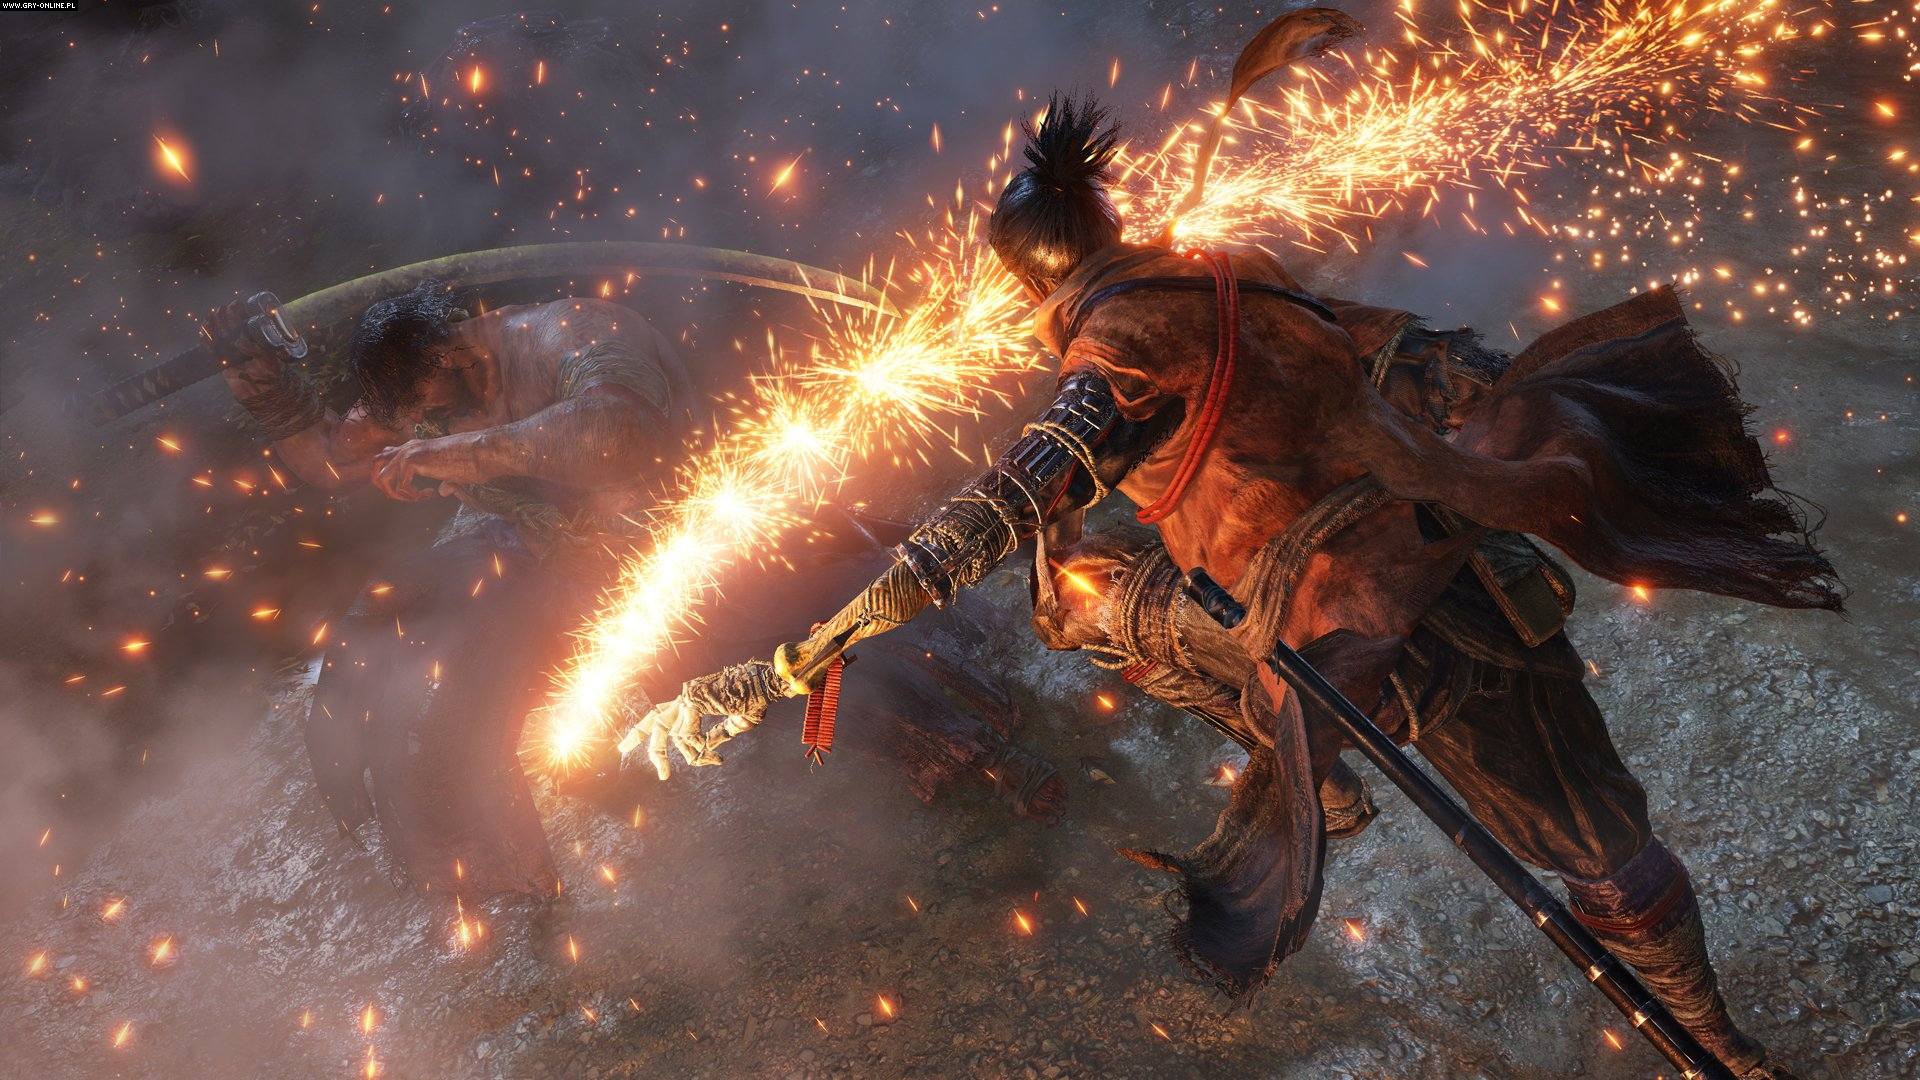 Sekiro: Shadows Die Twice PS4, XONE, PC Games Image 27/29, FromSoftware, Activision Blizzard